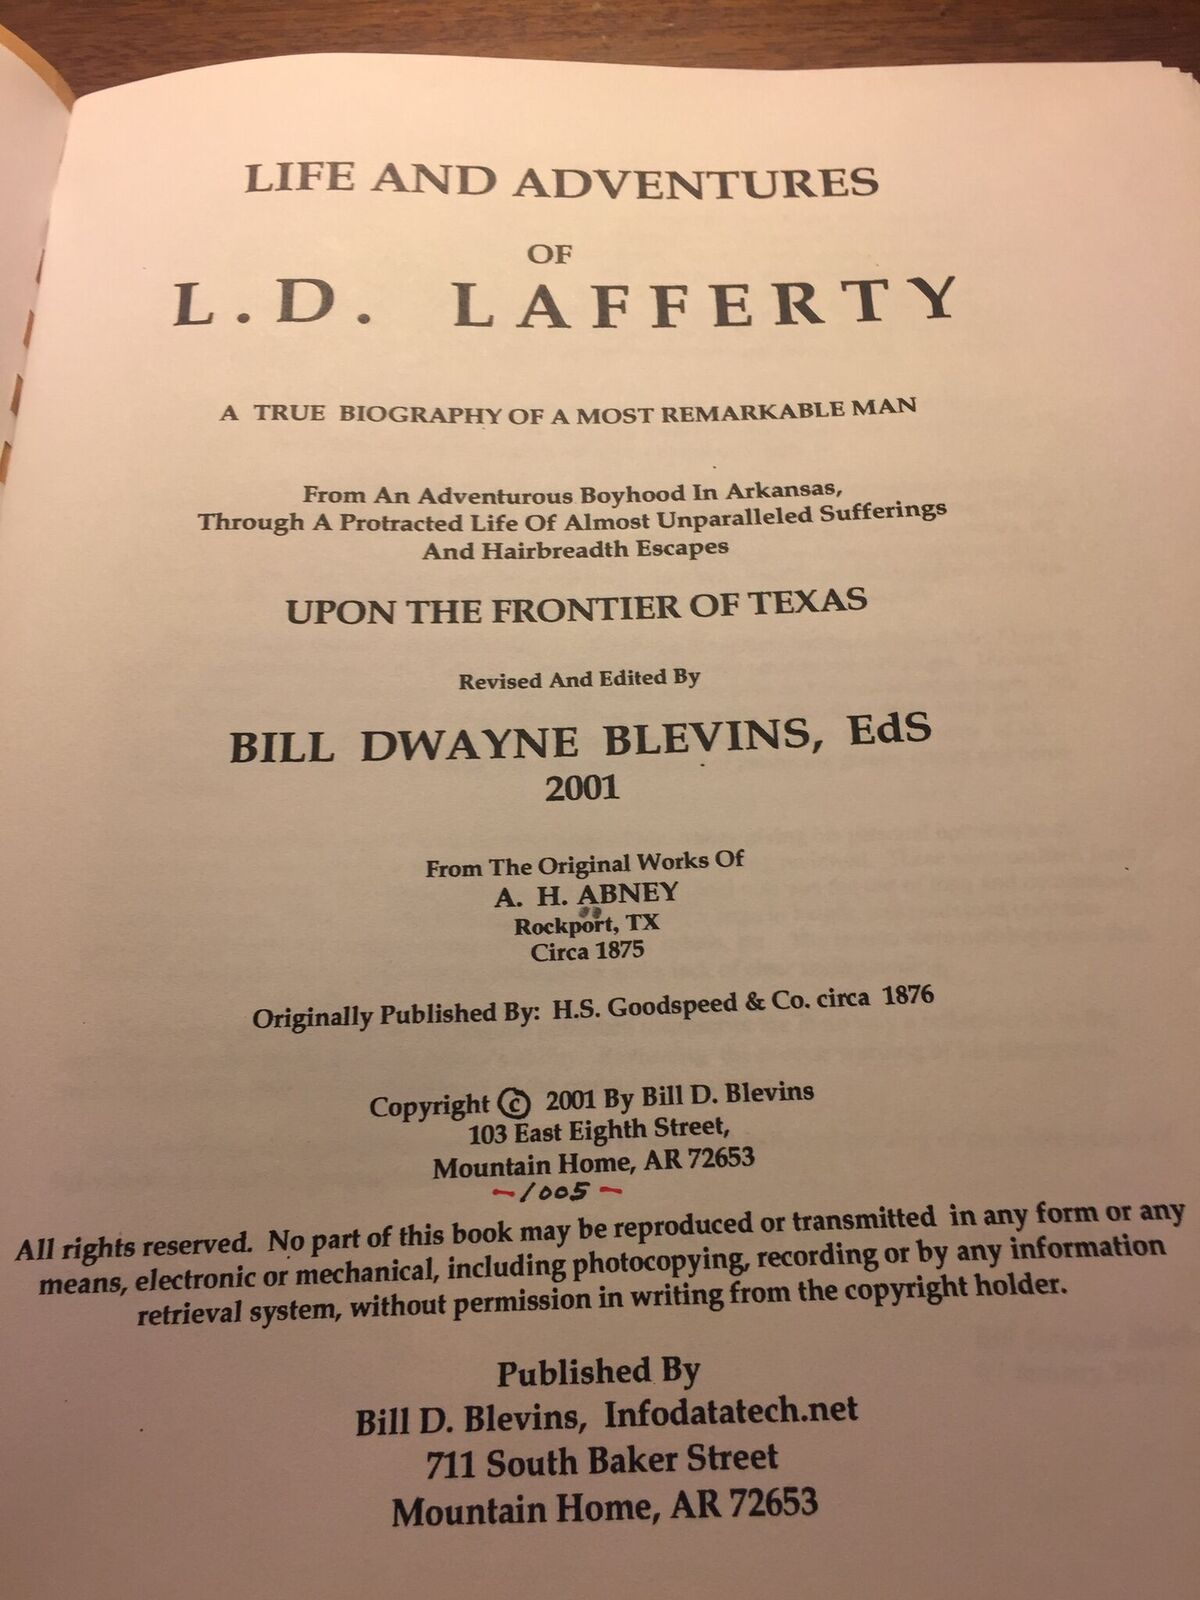 Library of Congress - Life & Times Reprint